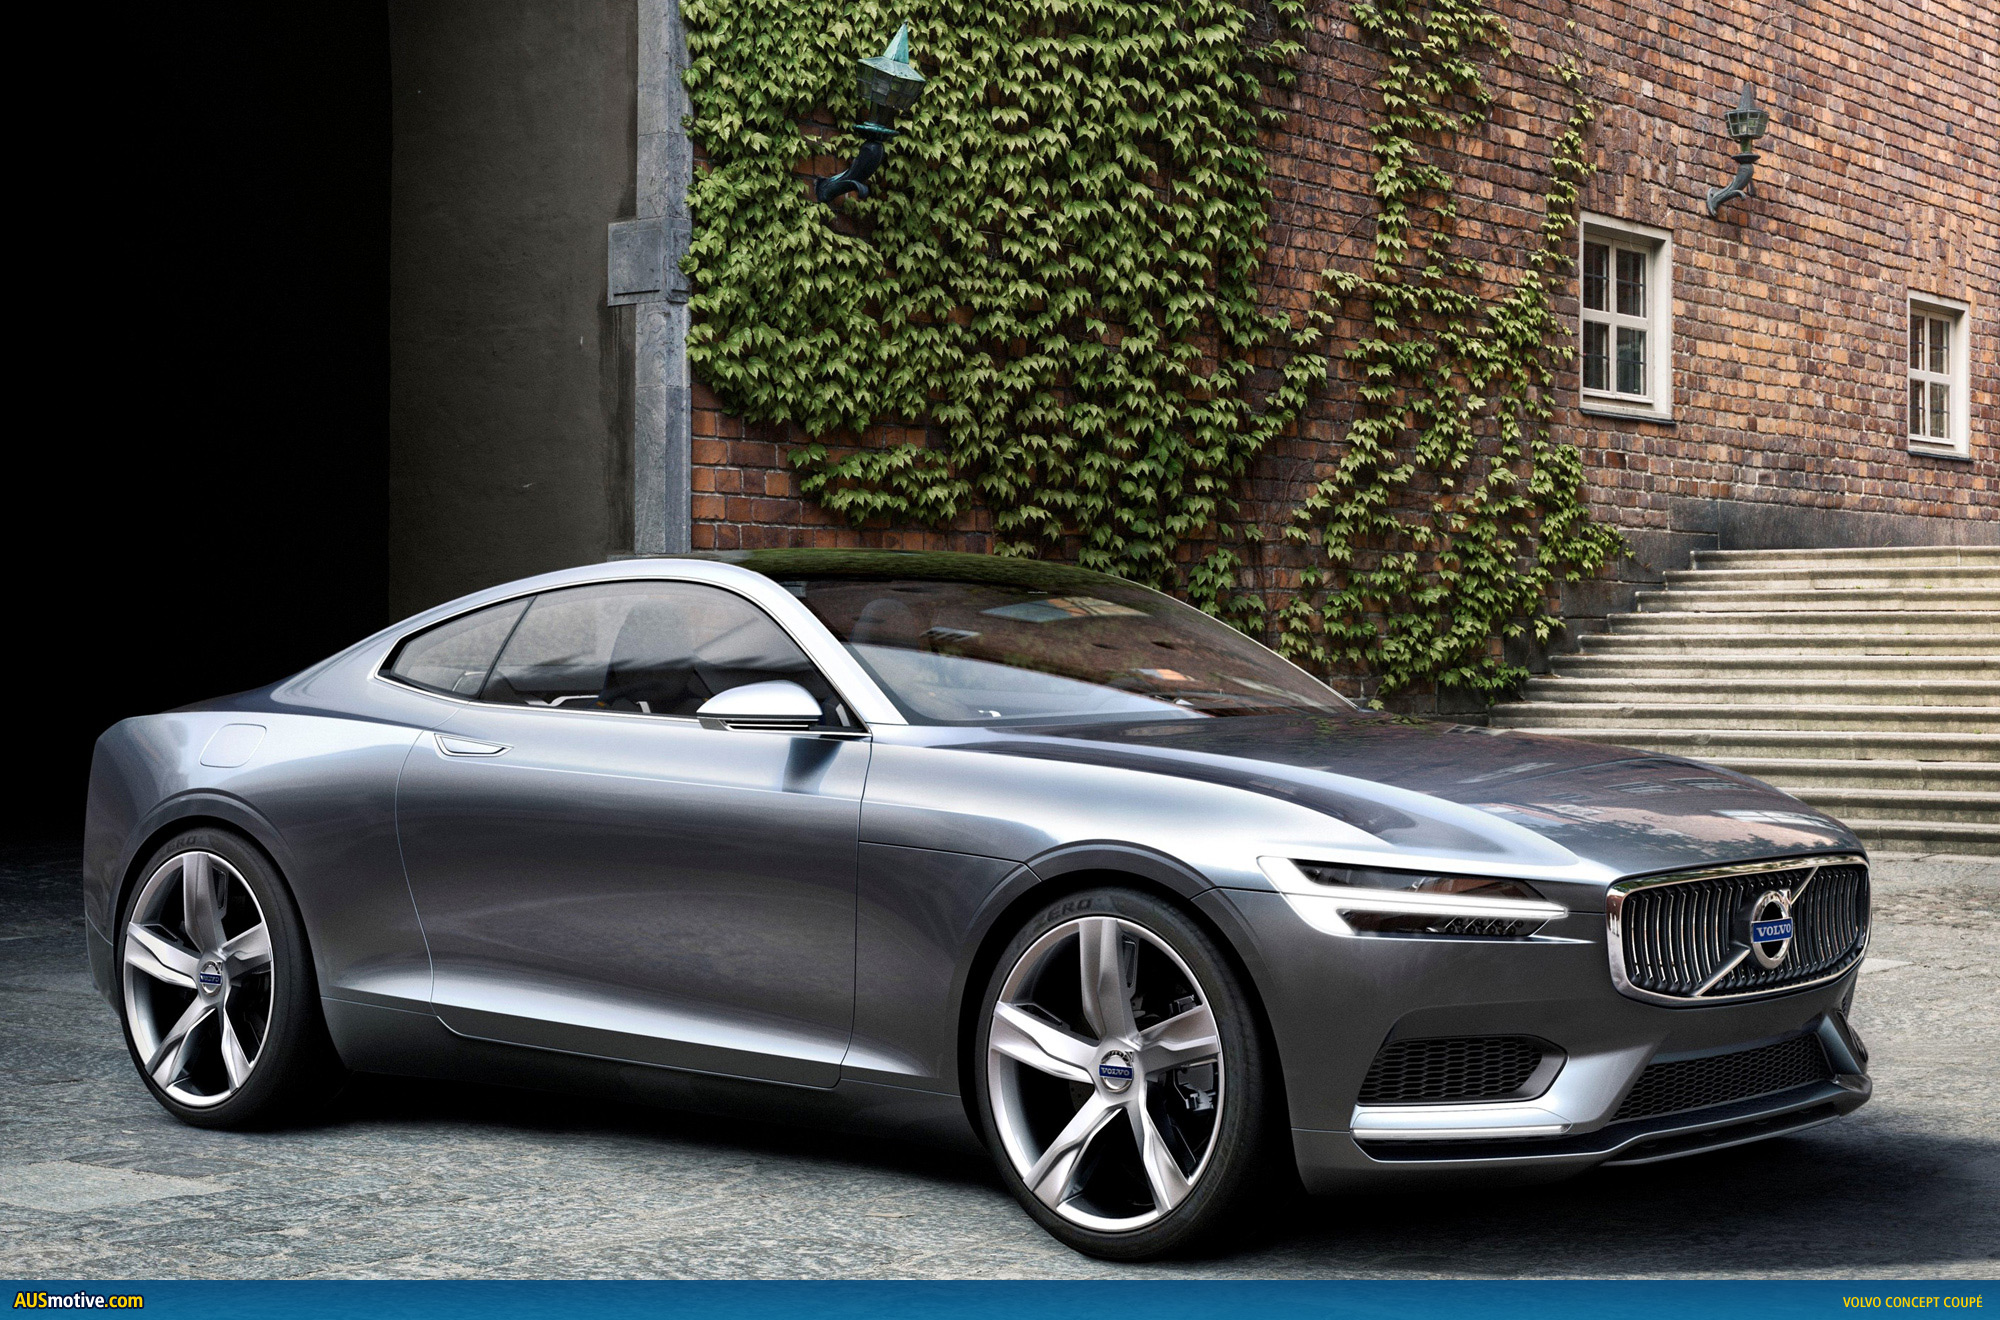 Volvo V70 Cabrio >> AUSmotive.com » Volvo Concept Coupé revealed